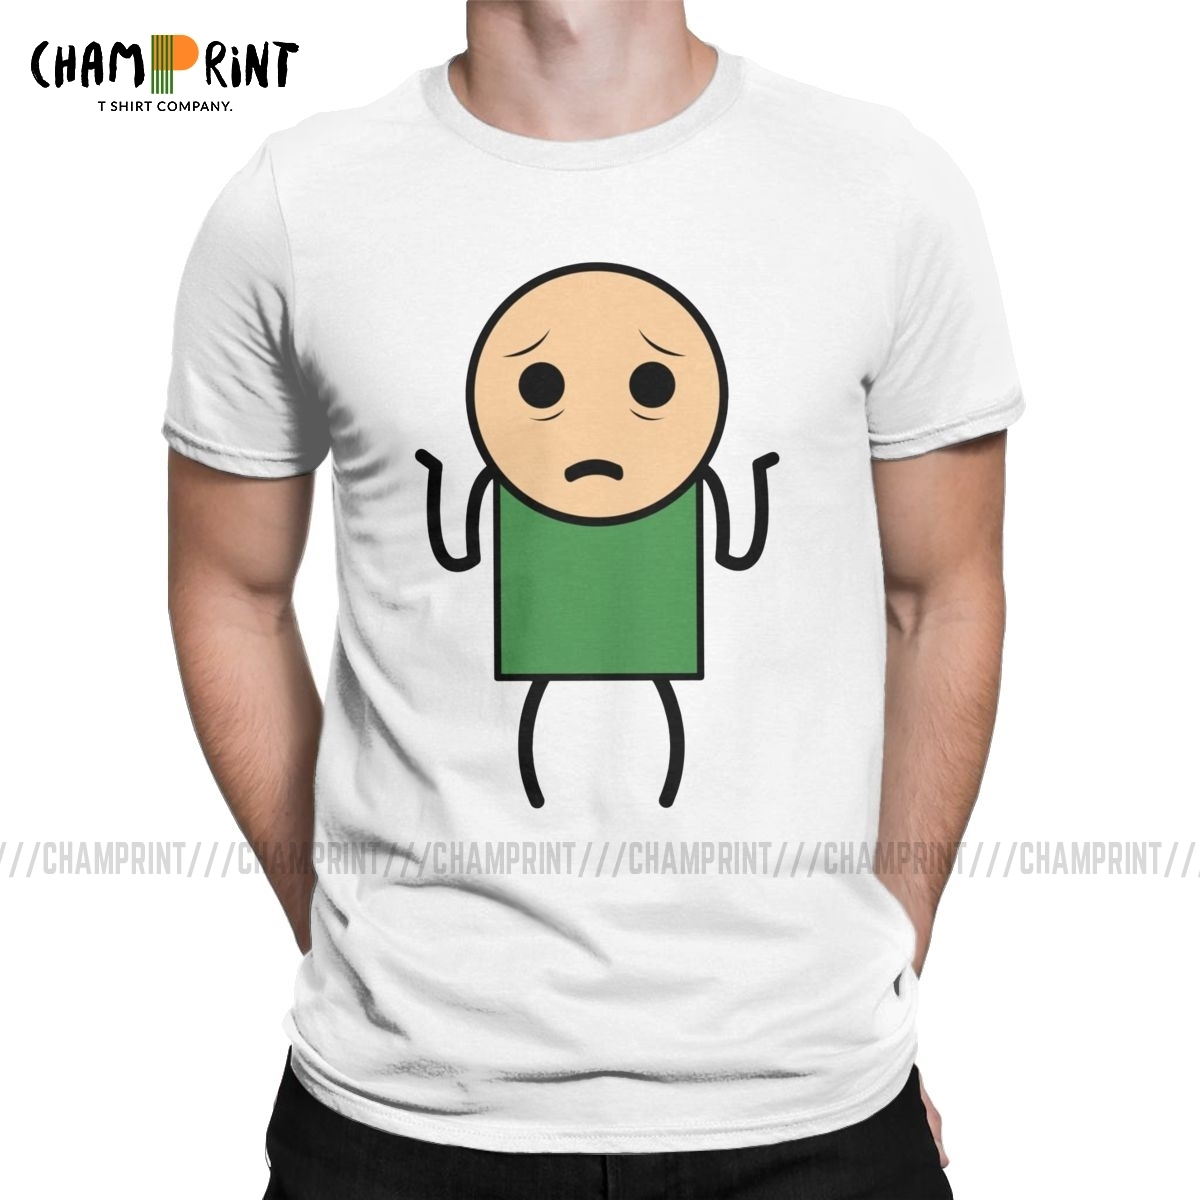 Confused Stick Man Men's T Shirts The Cyanide & Happiness Show Unique Tees Short Sleeve T-Shirts Cotton Gift Idea Clothes image